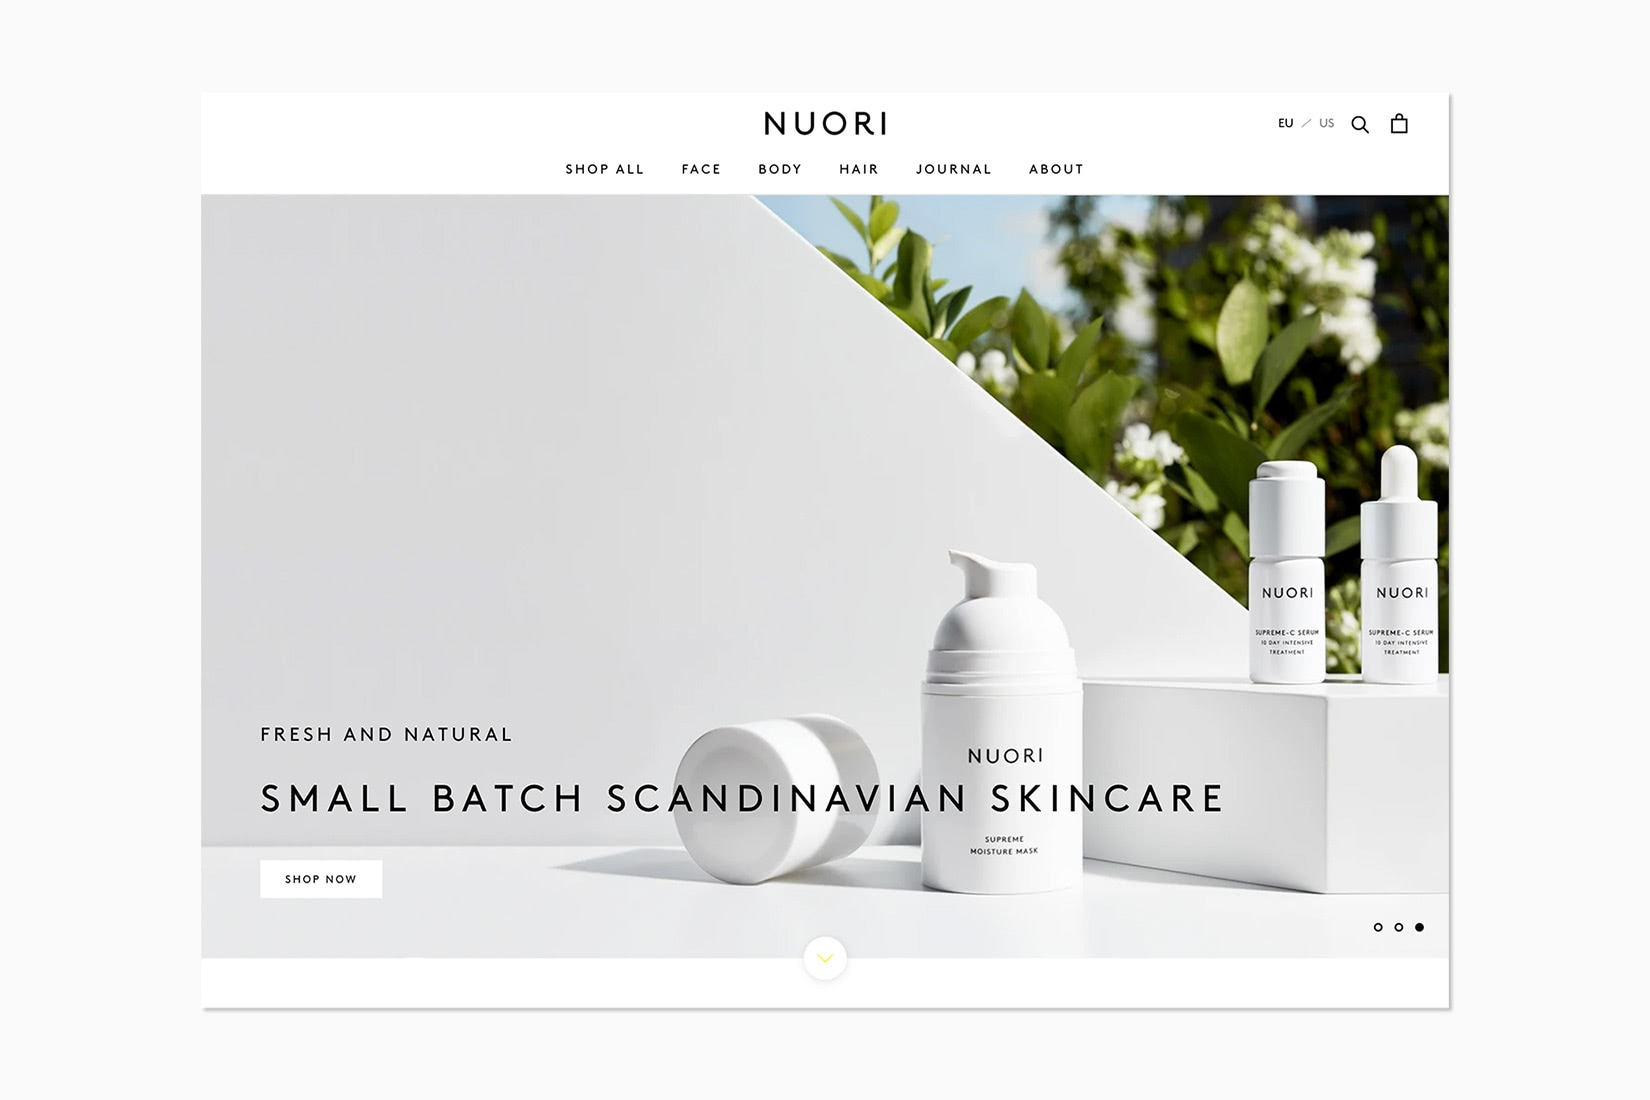 online luxury beauty retail nuori - Luxe Digital